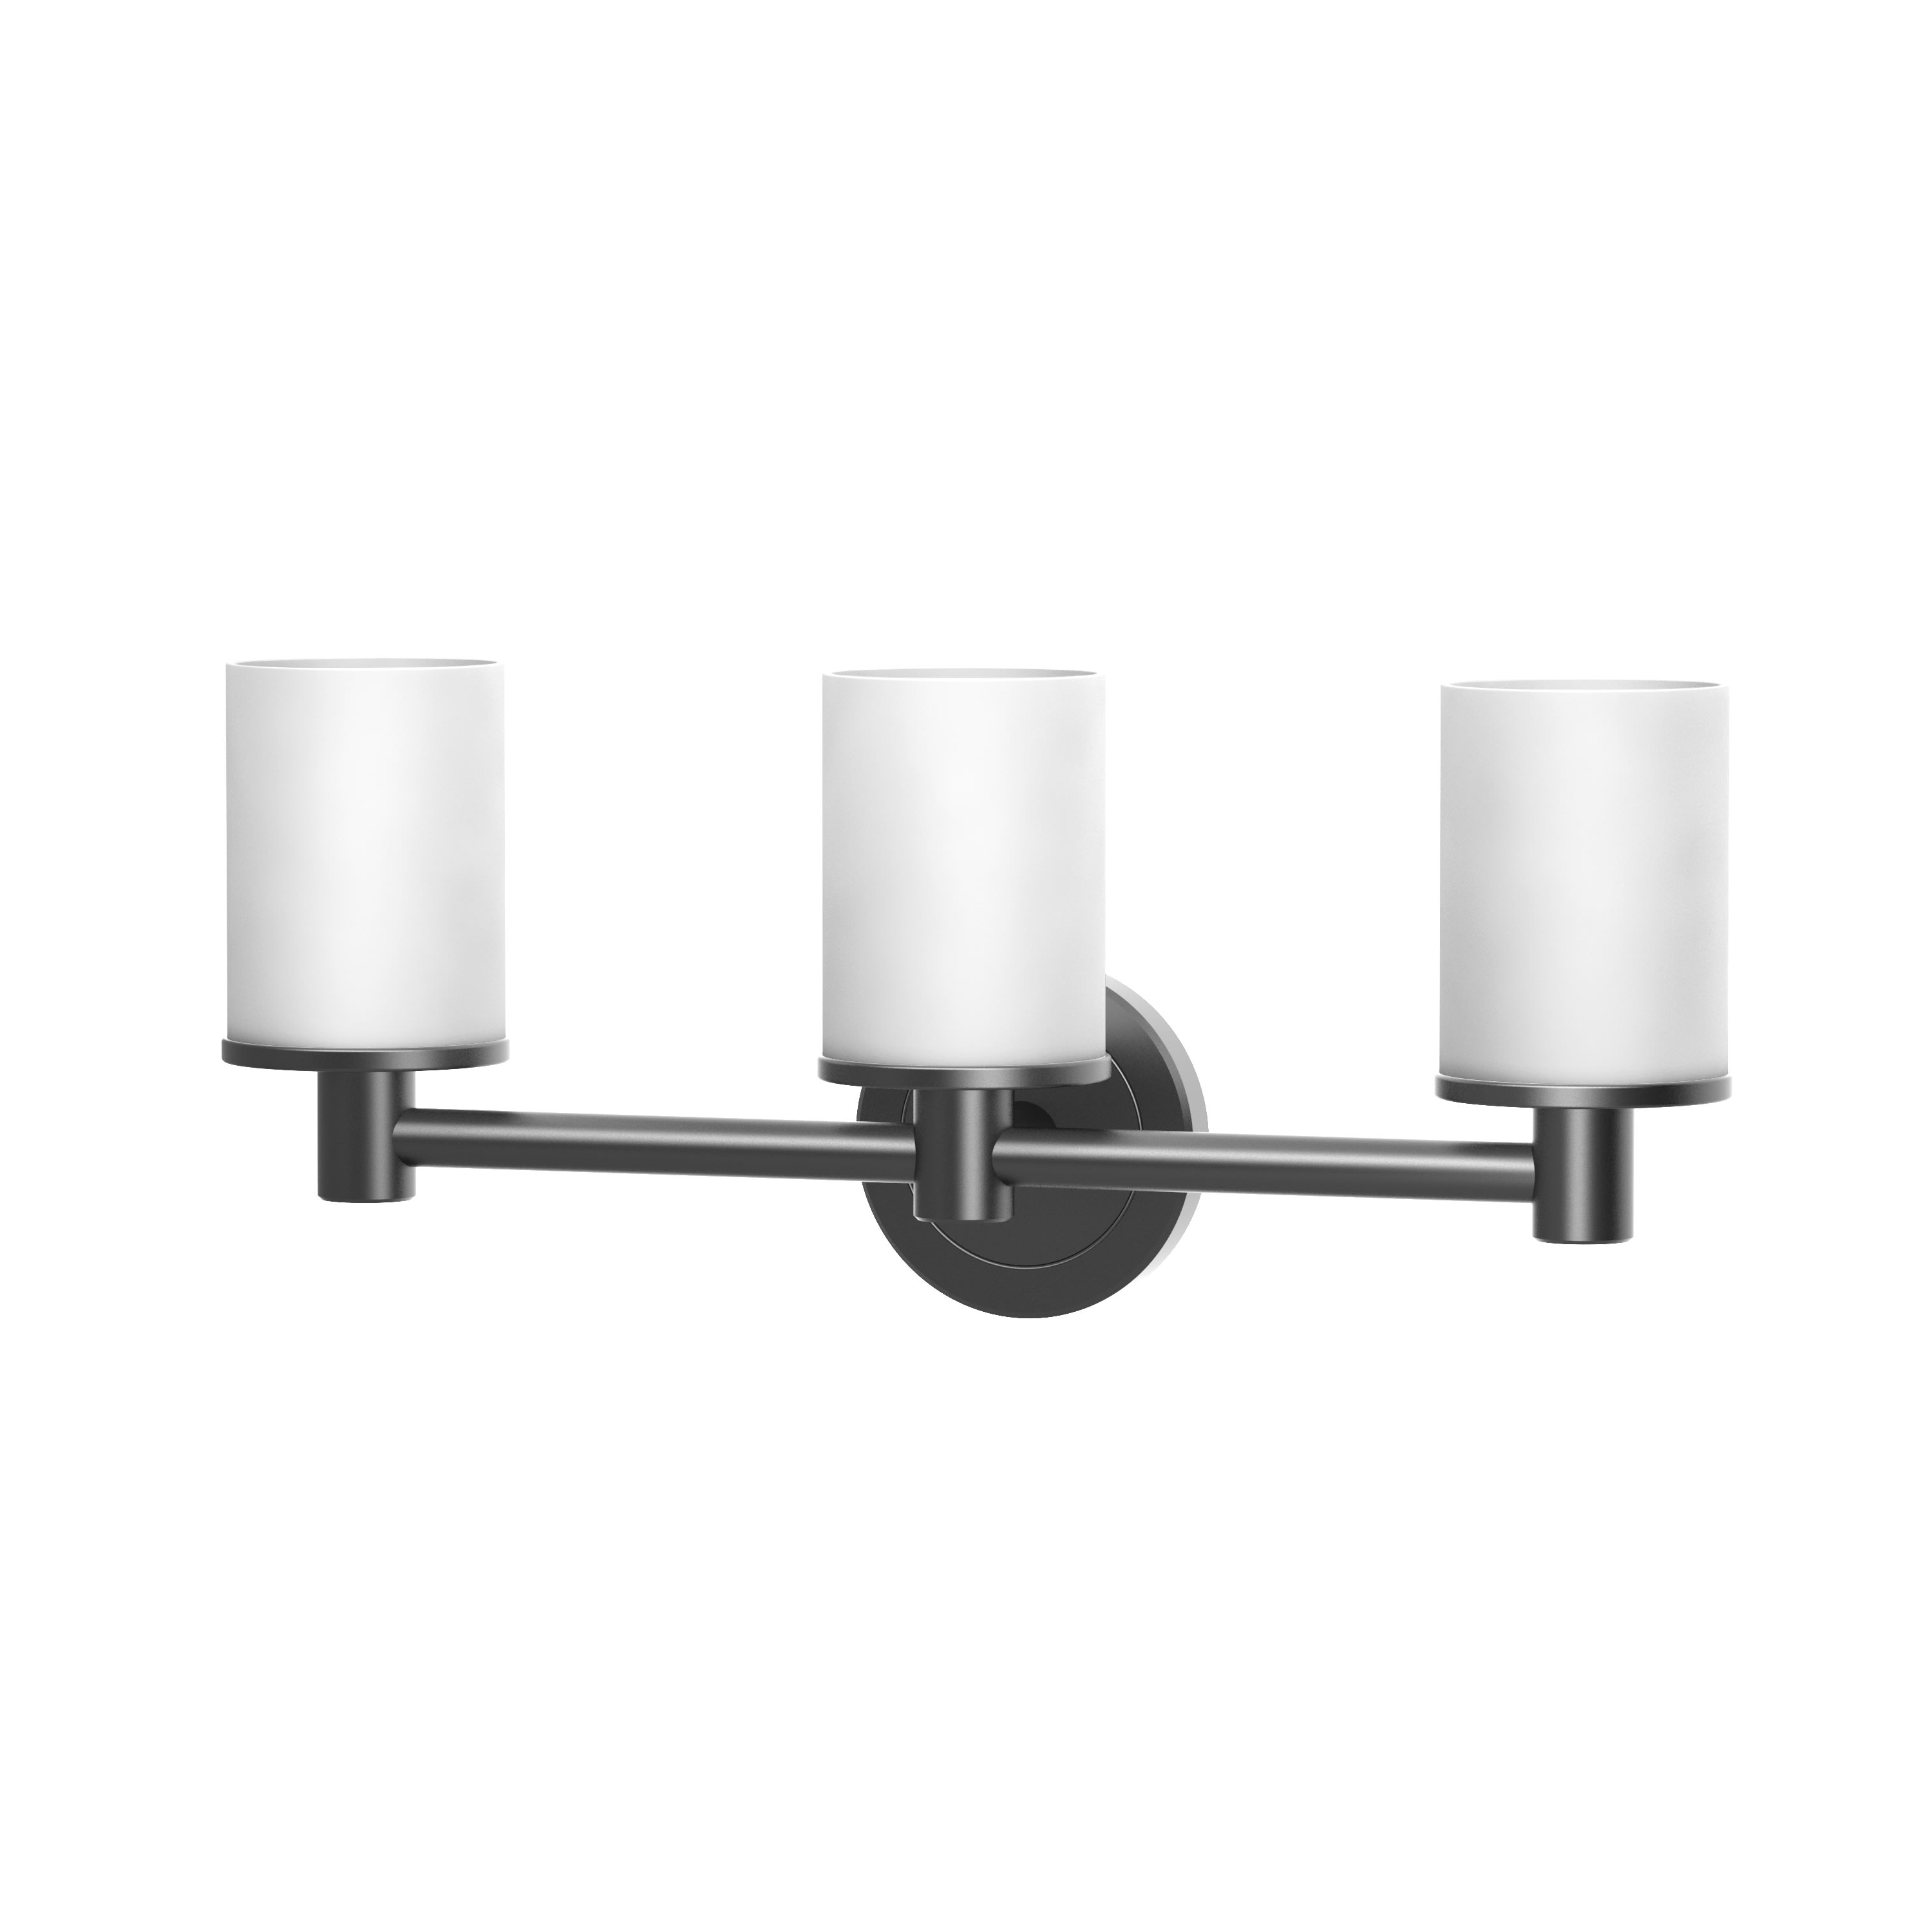 Image of: Gatco 1686mx Matte Black Latitude 2 3 Light 19 5 8 Wide Bathroom Vanity Light With Frosted Shades Ada Compliant Faucet Com